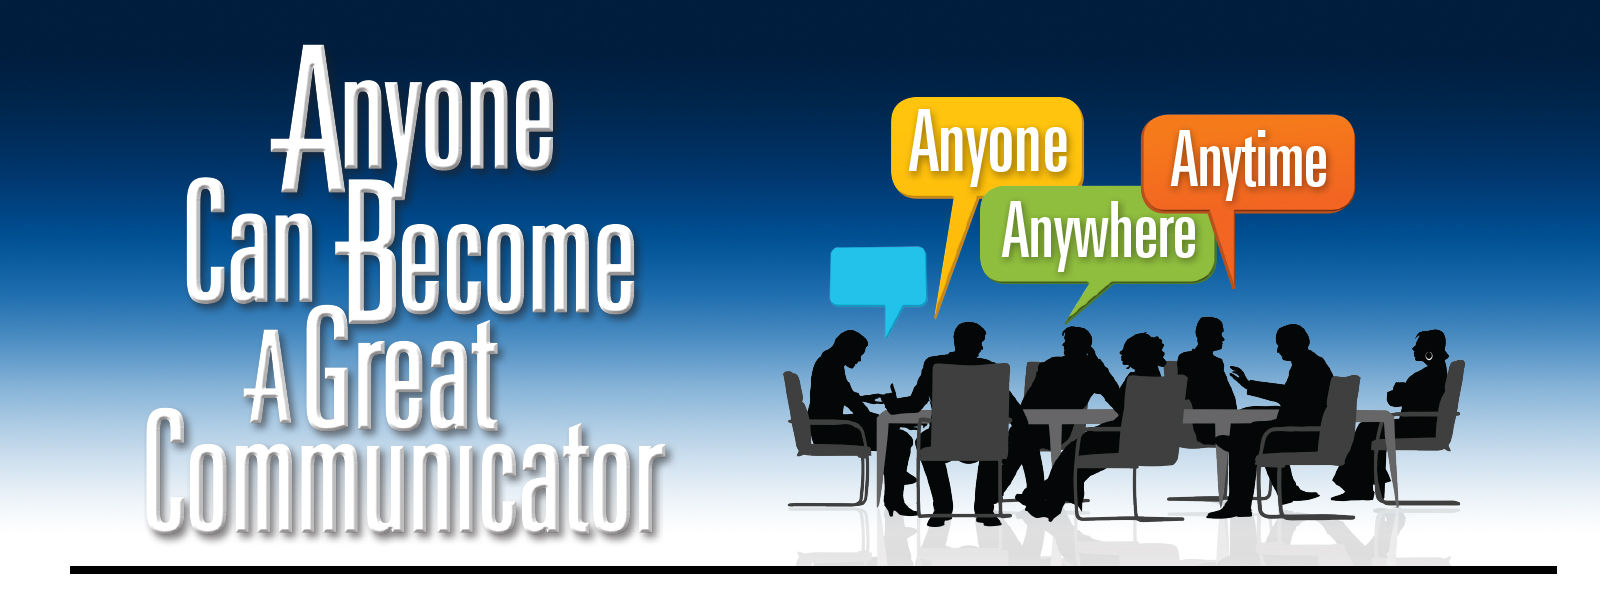 Anyone Can Become a Great Communicator – Anyone, Anywhere, Anytime